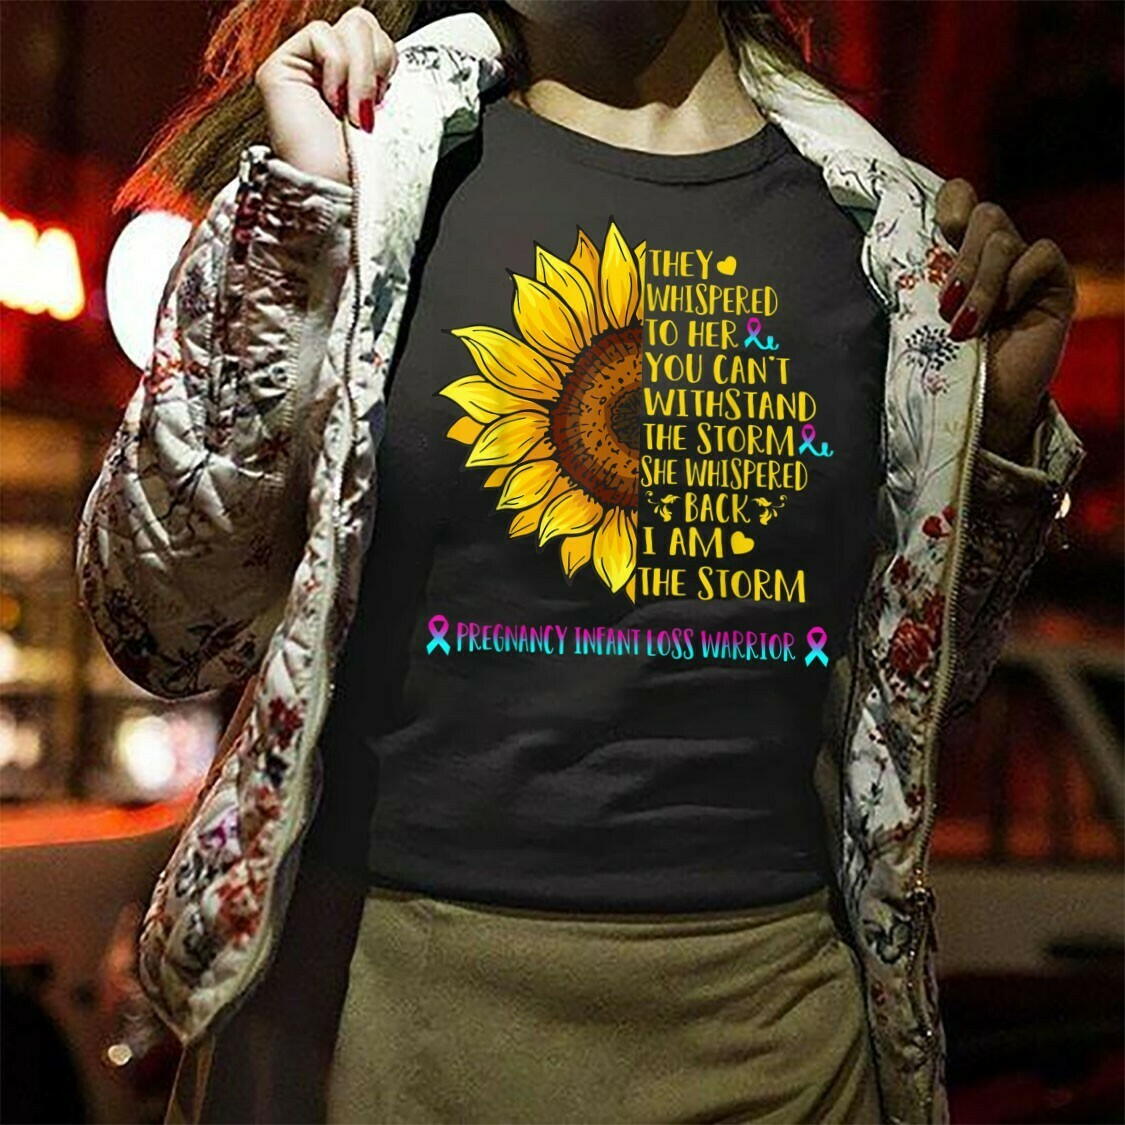 I Am The Storm Pregnancy Infant Loss Warrior Sunflower Whispered Withstand The Storm  T-Shirt Hoodie Sweatshirt Sweater Tee Kids Youth Gifts Jolly Family Gifts